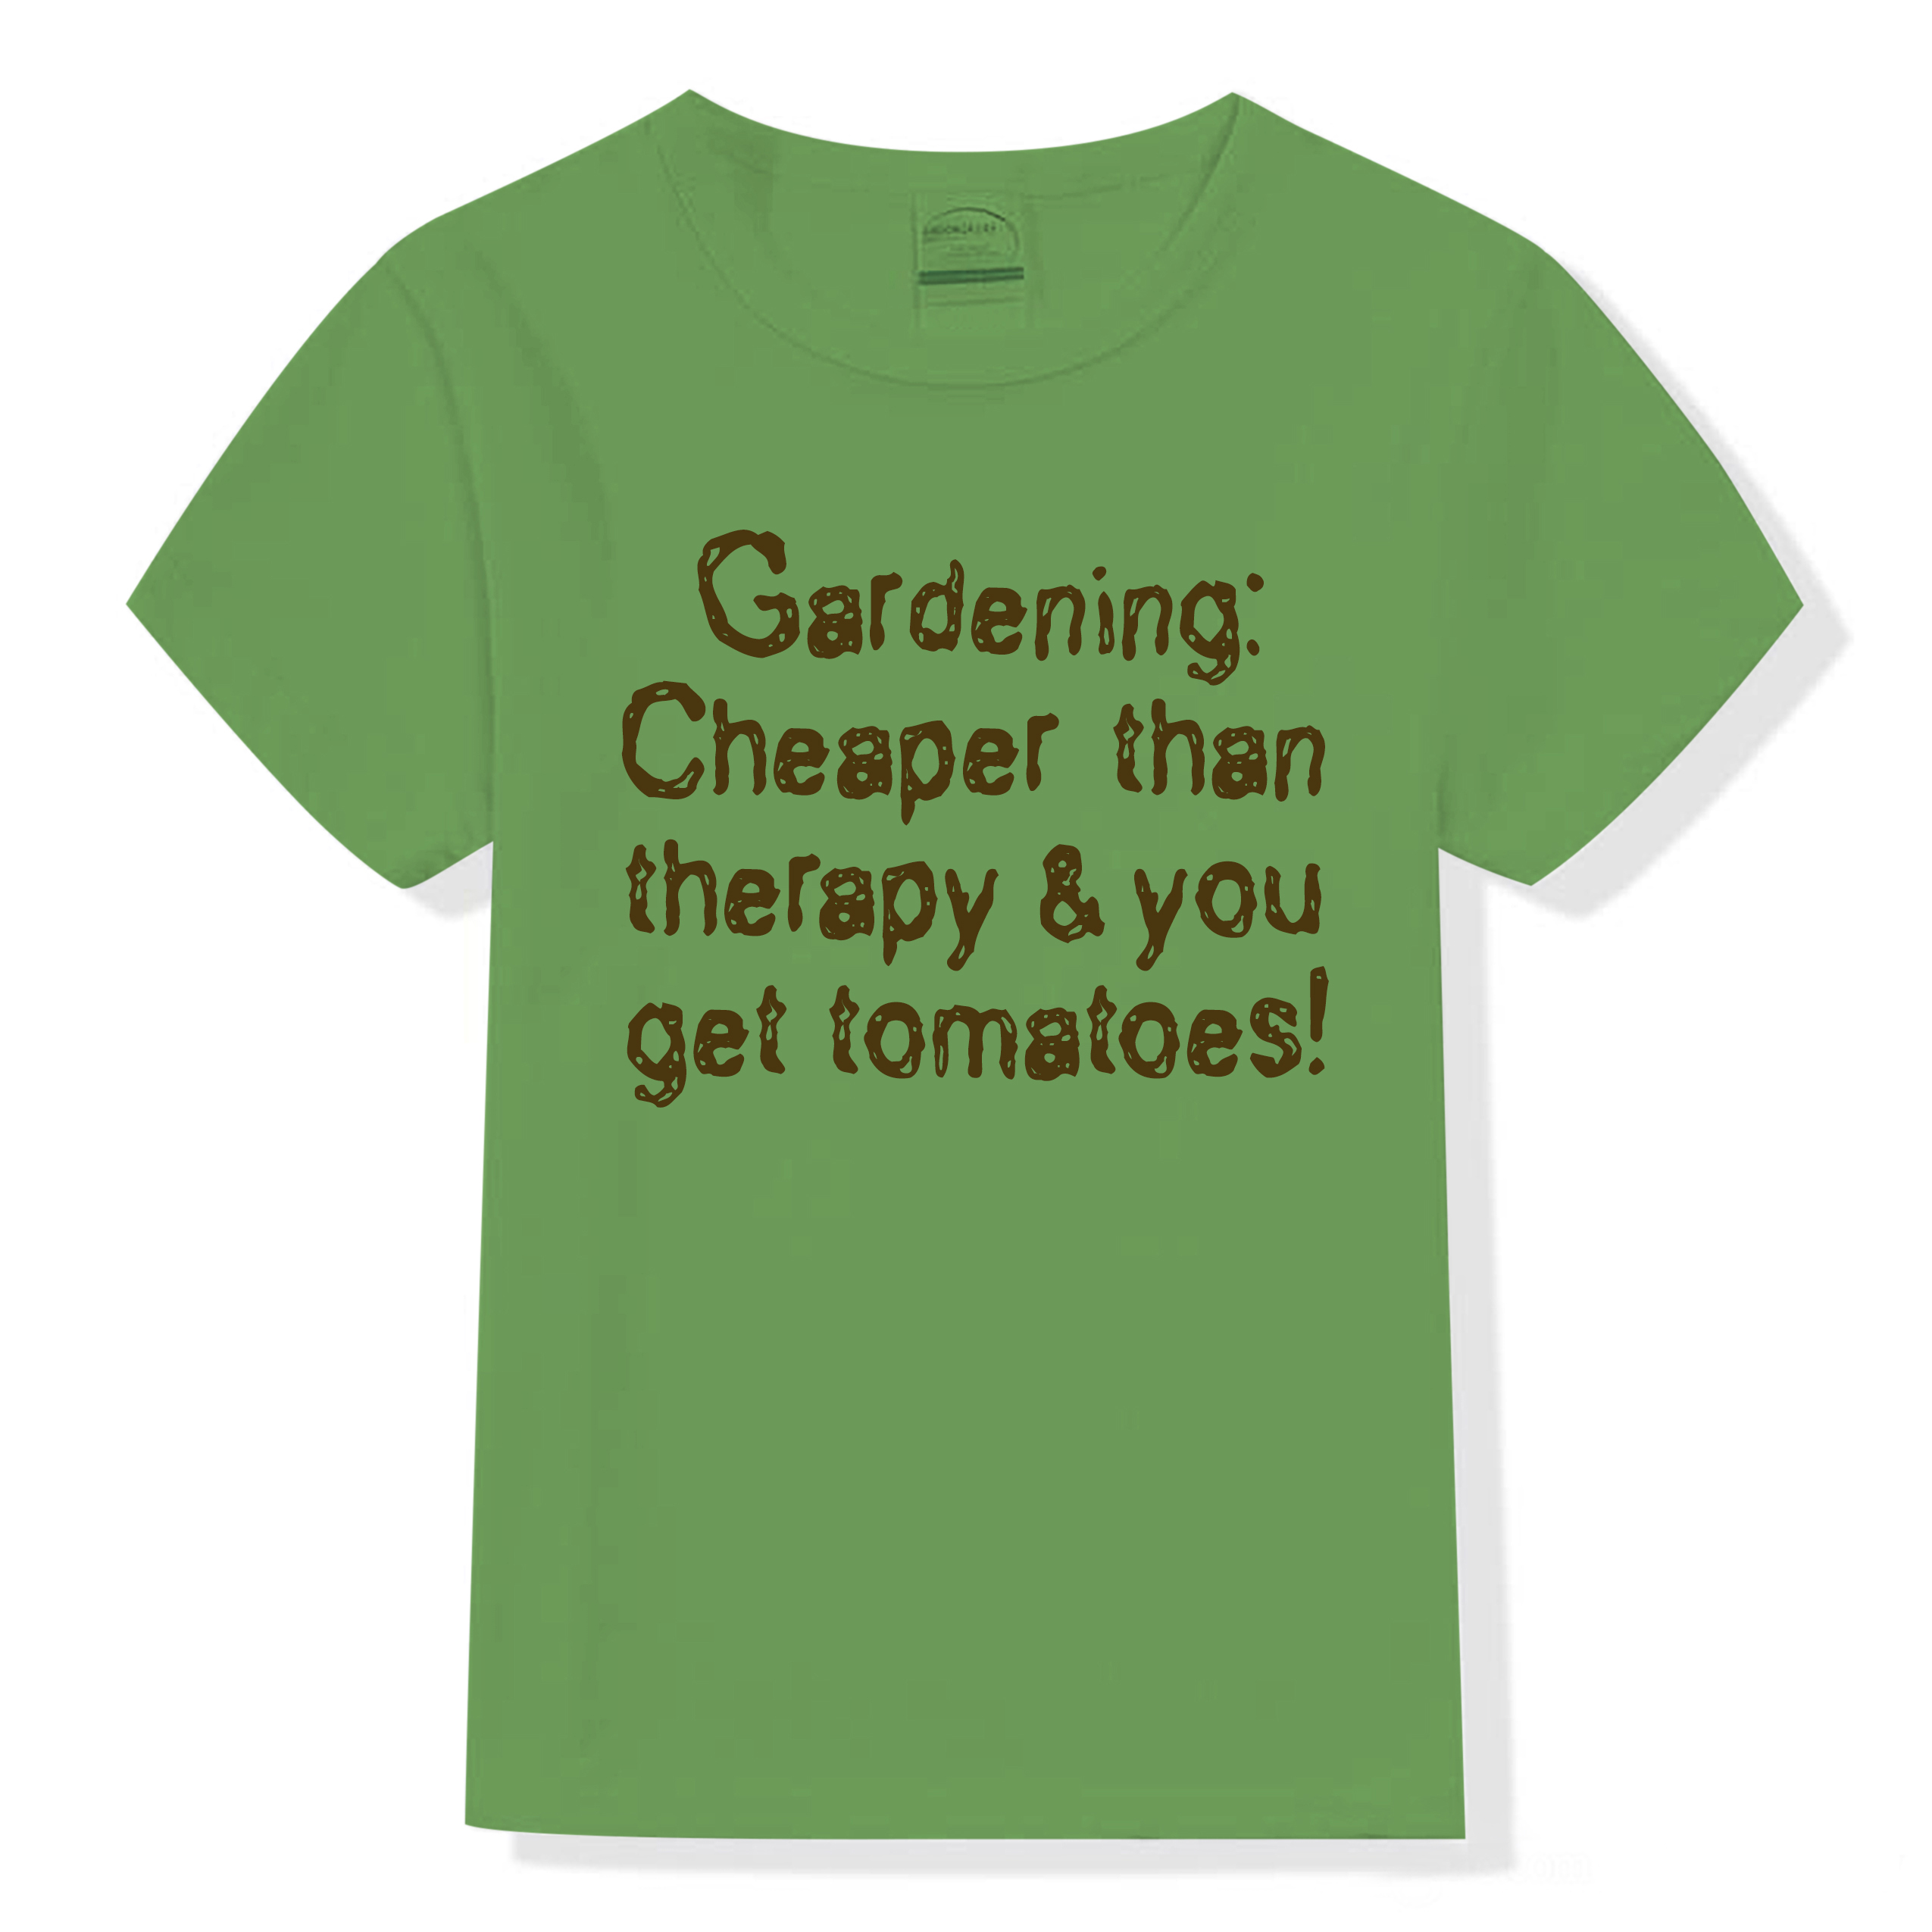 "Garner Grows tee shirt with slogan ""Gardening: Cheaper than therapy & you get tomatoes!"""